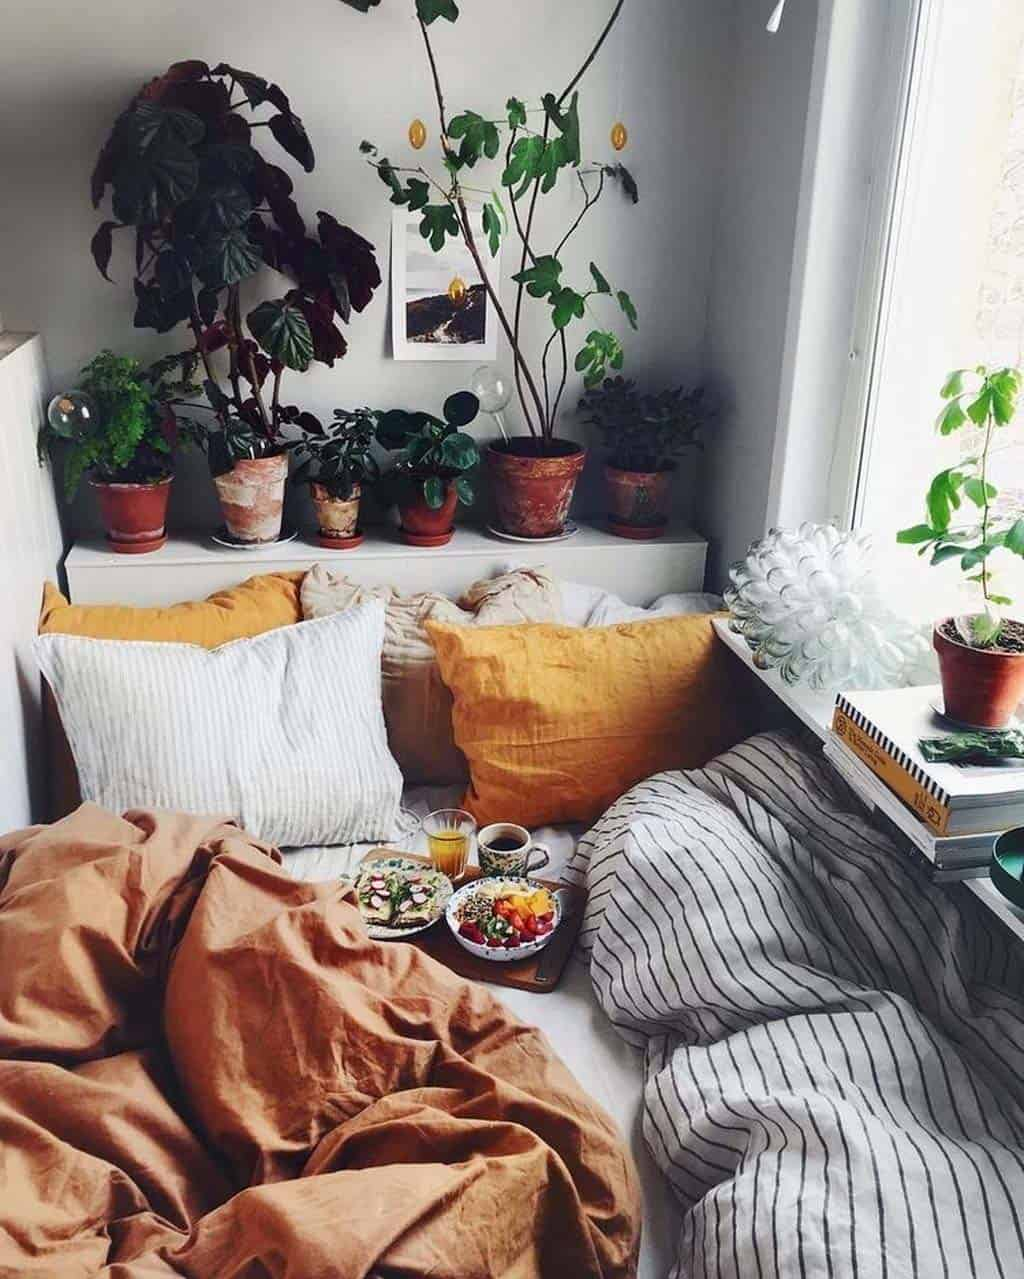 Bedroom-Decorating-Ideas-For-Autumn-17-1-Kindesign